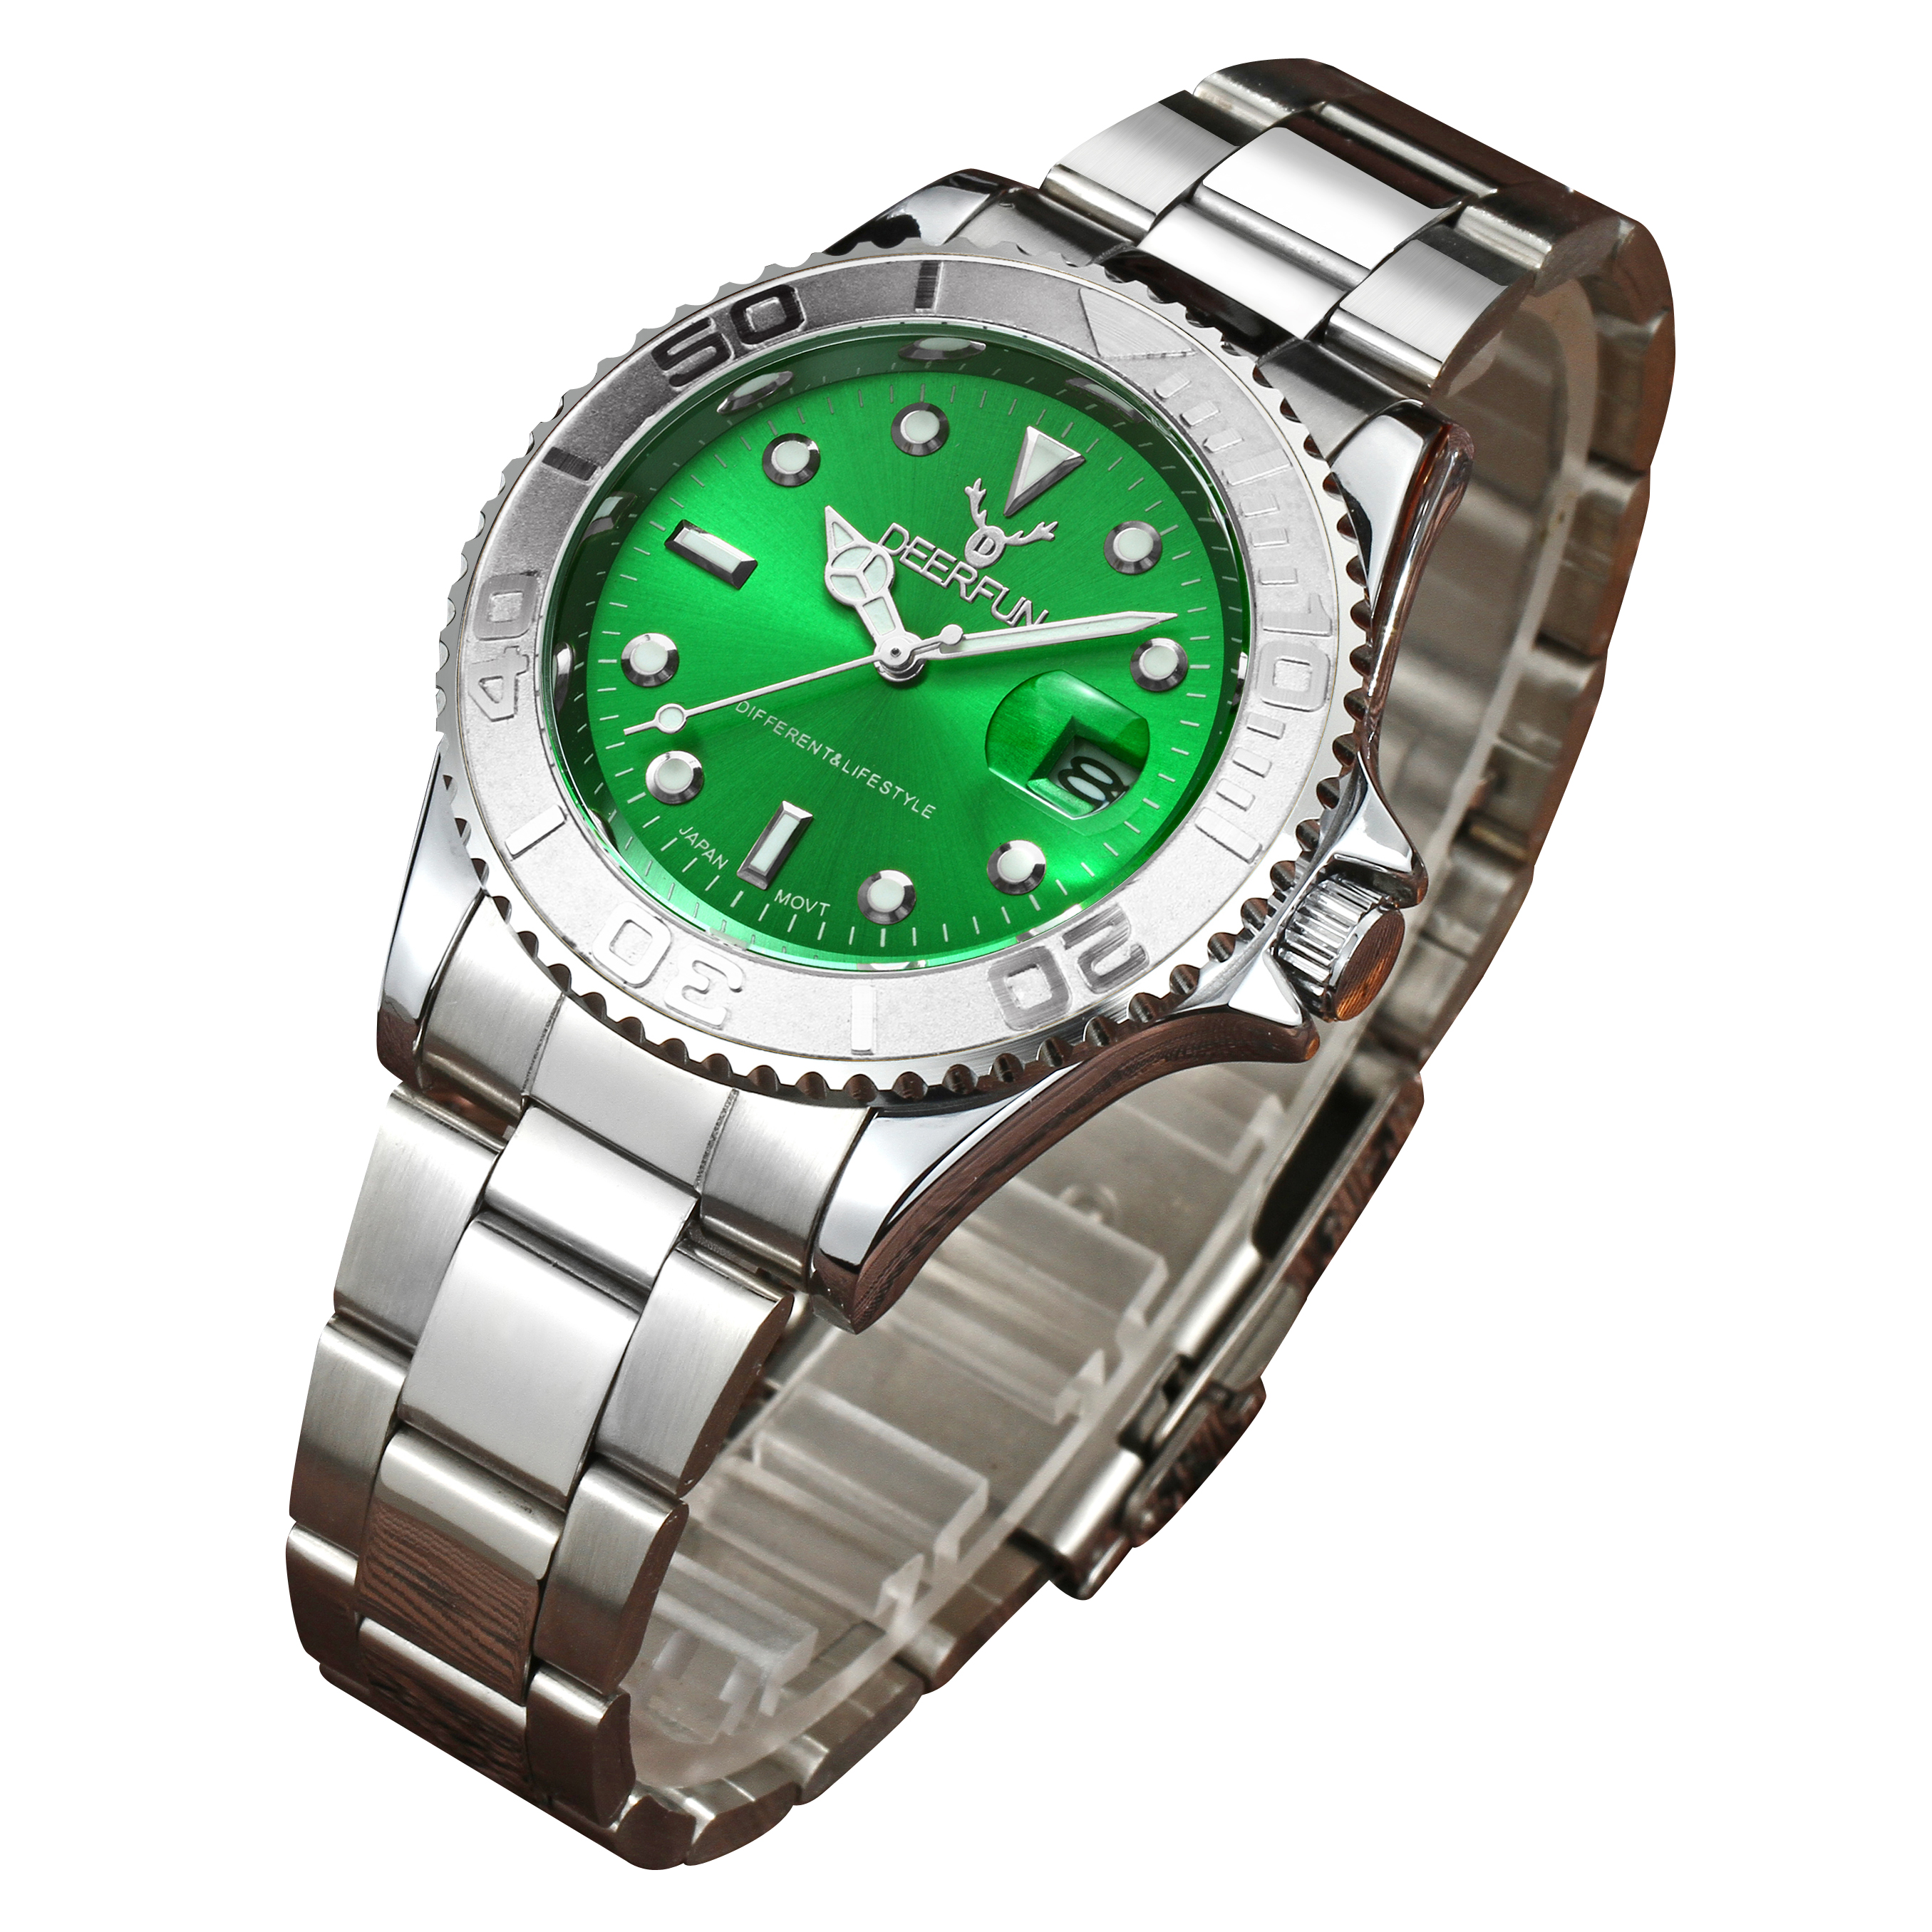 fun watches reloj tous bracelets drive pinterest pin silicona de